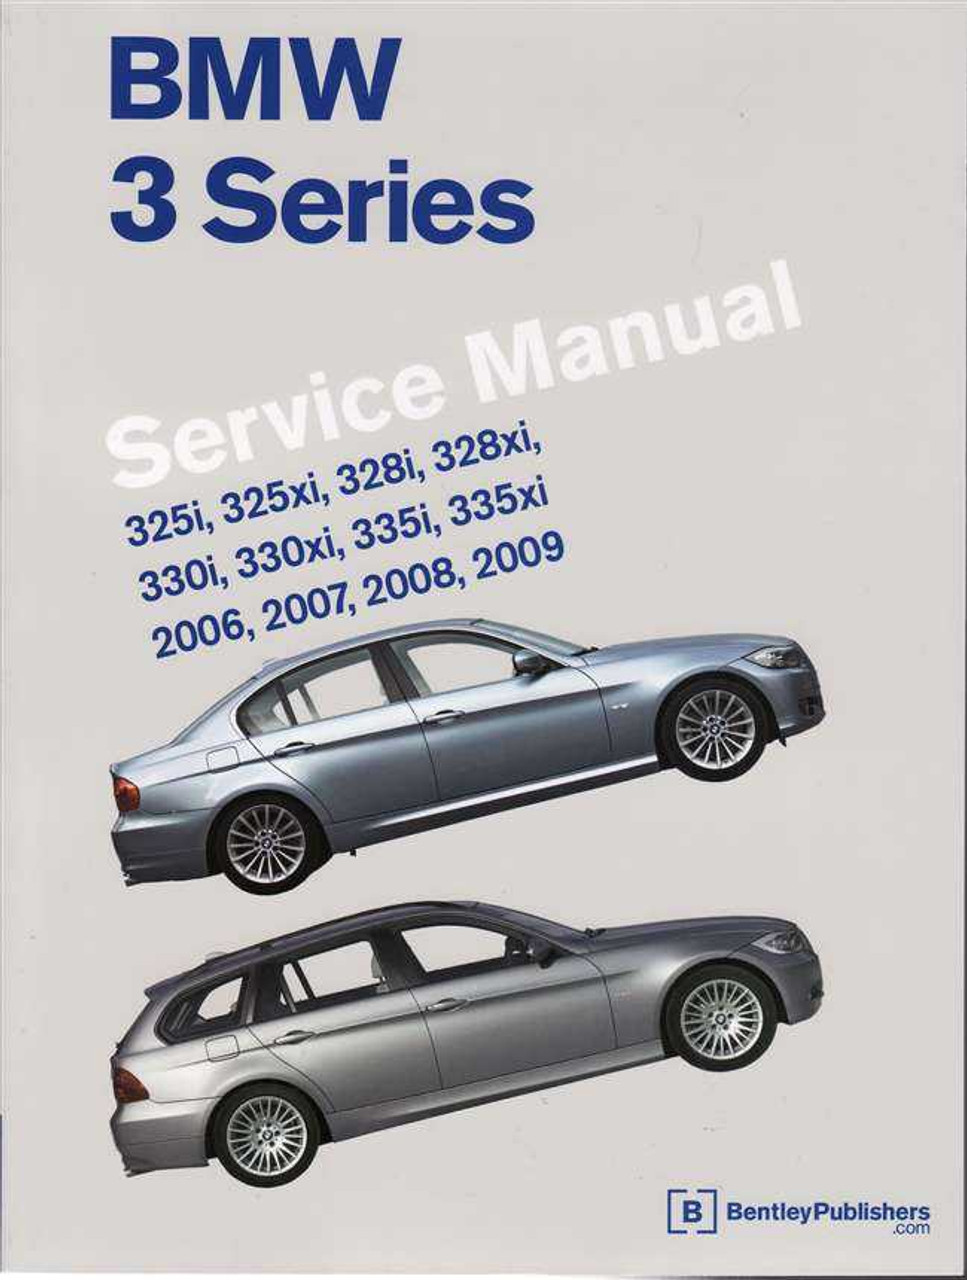 bmw 3 series e90 e91 e92 e93 2006 2009 workshop manual rh automotobookshop com au bmw e91 320d service manual bmw 320d service manual